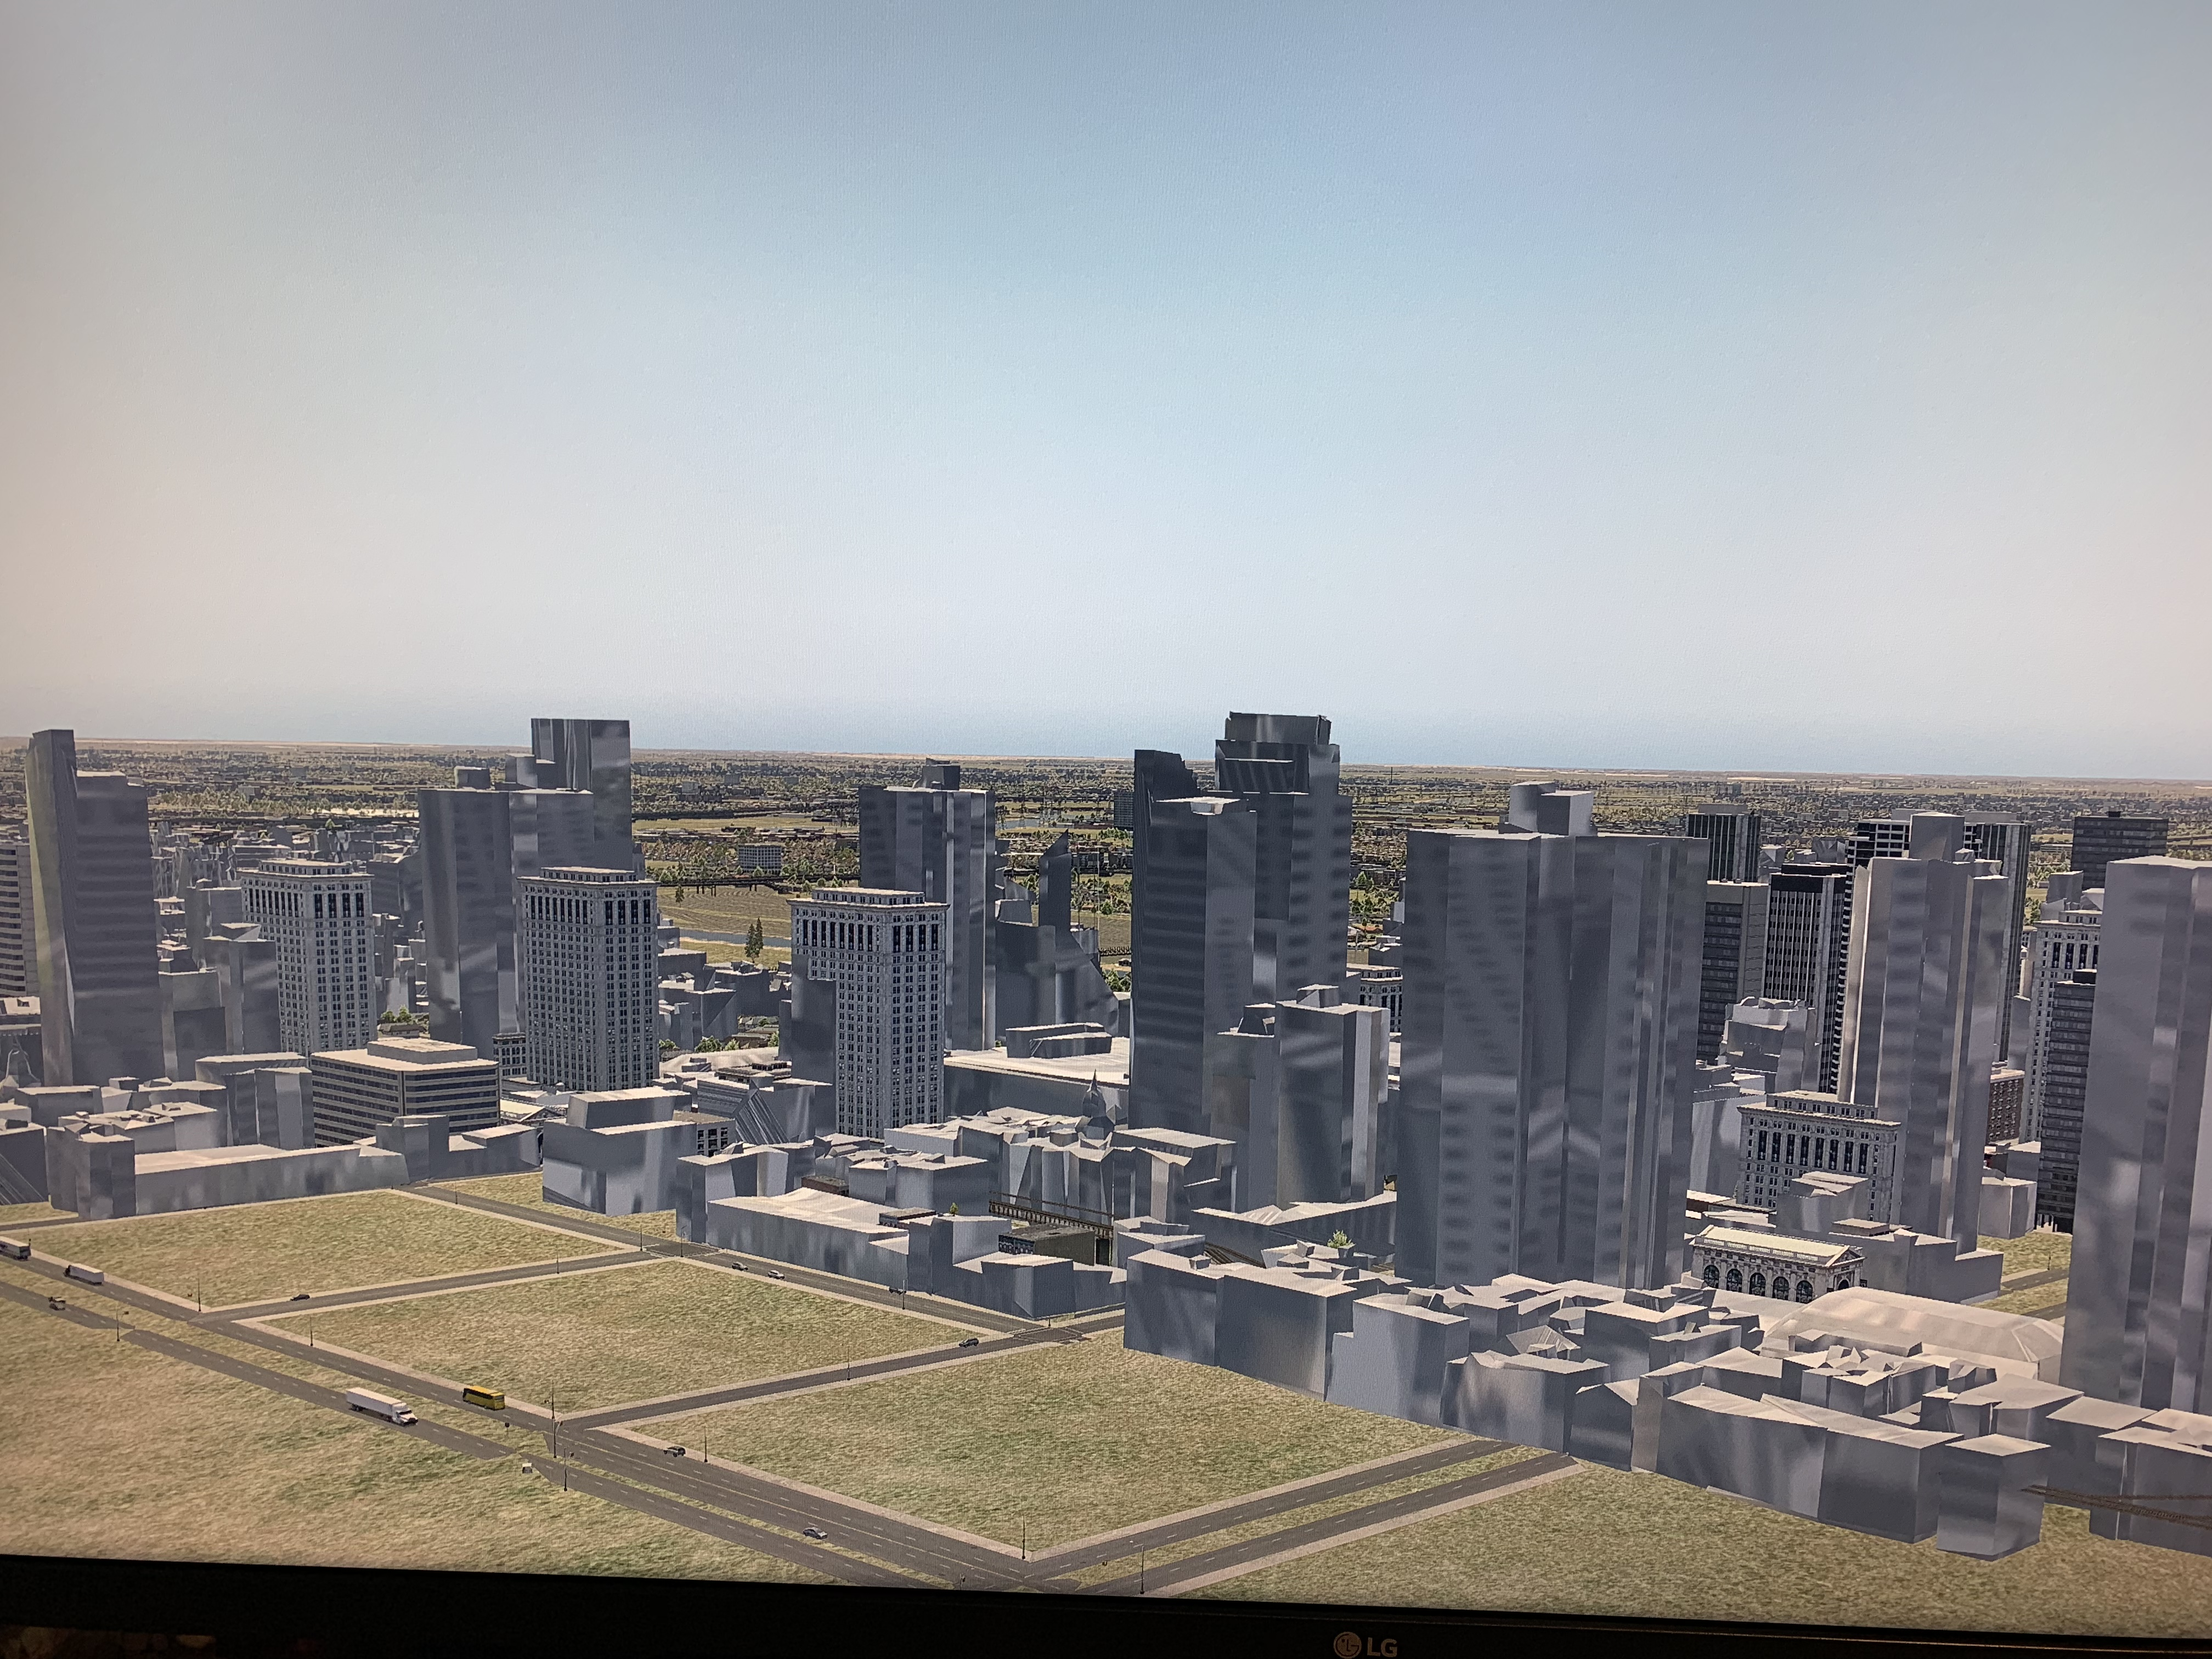 The scenery is coming up like this. I have tried doing the re installer. Removing plugins. Removing add ons. I have a lot of customer scenery so trying to avoid fresh install. It only happens with this city.